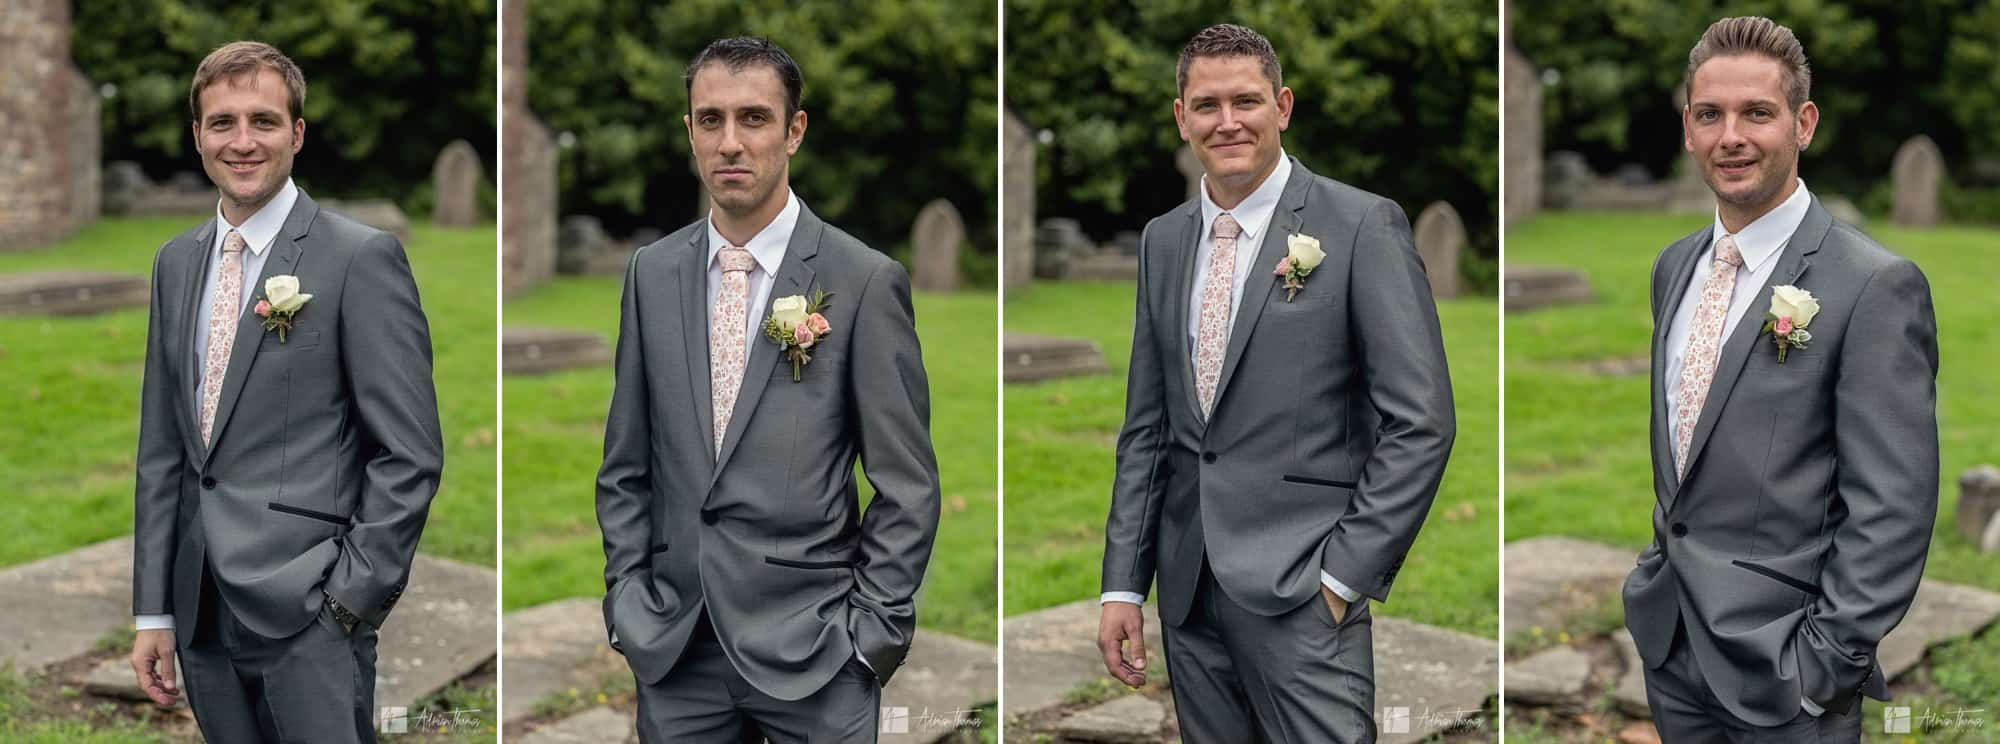 Groom and bestmen at St Basils Church.